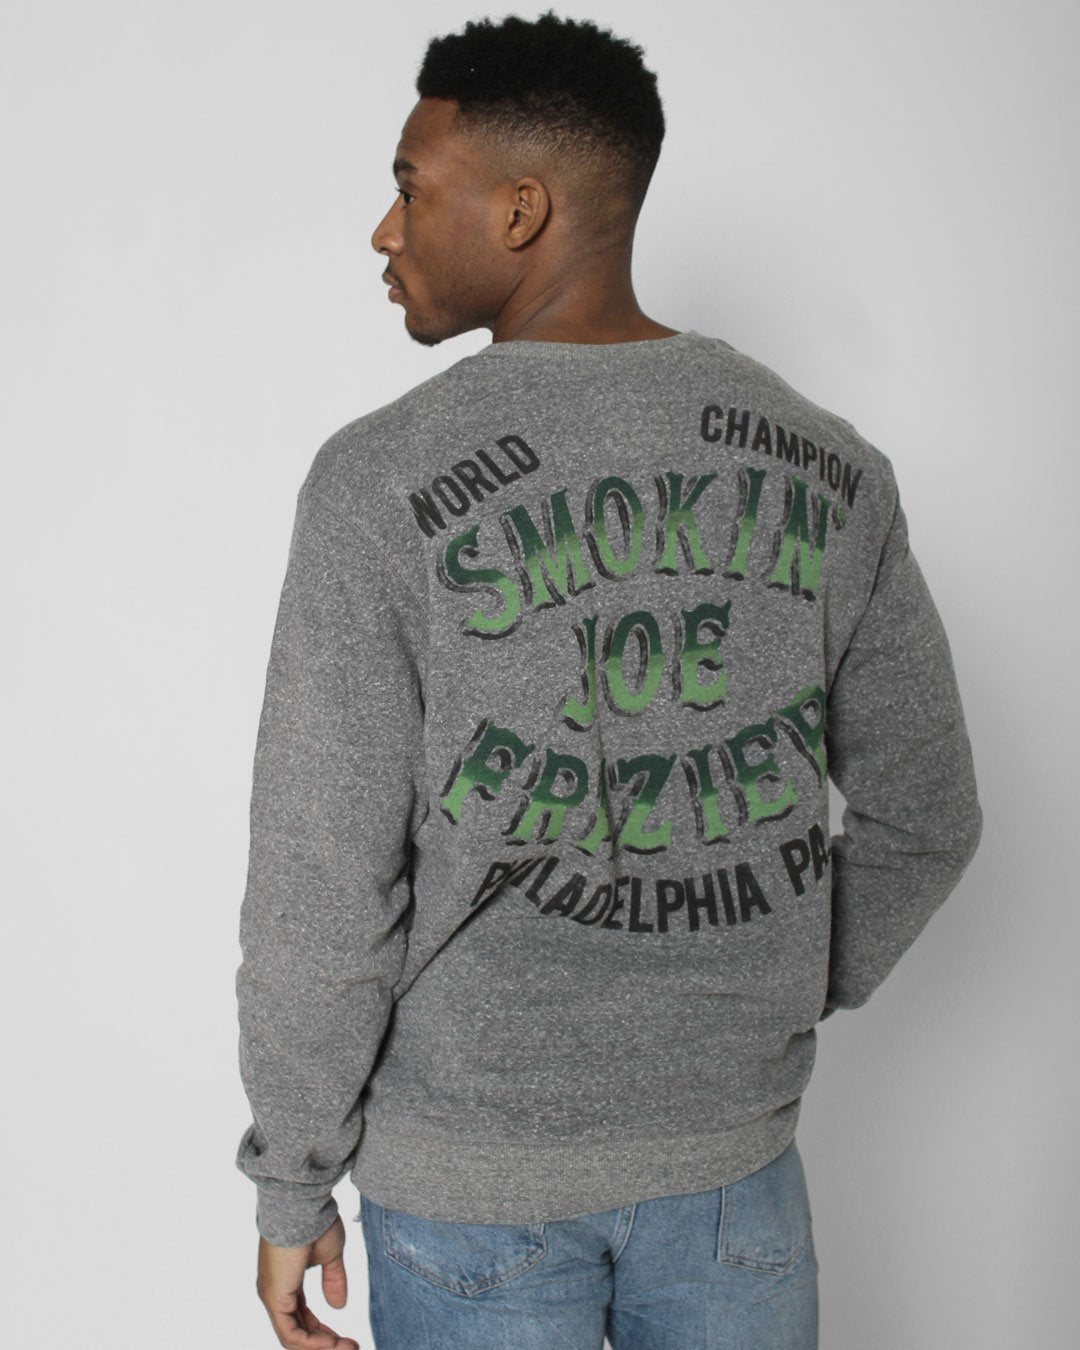 Smokin' Joe Initials Sweatshirt - Roots of Inc dba Roots of Fight